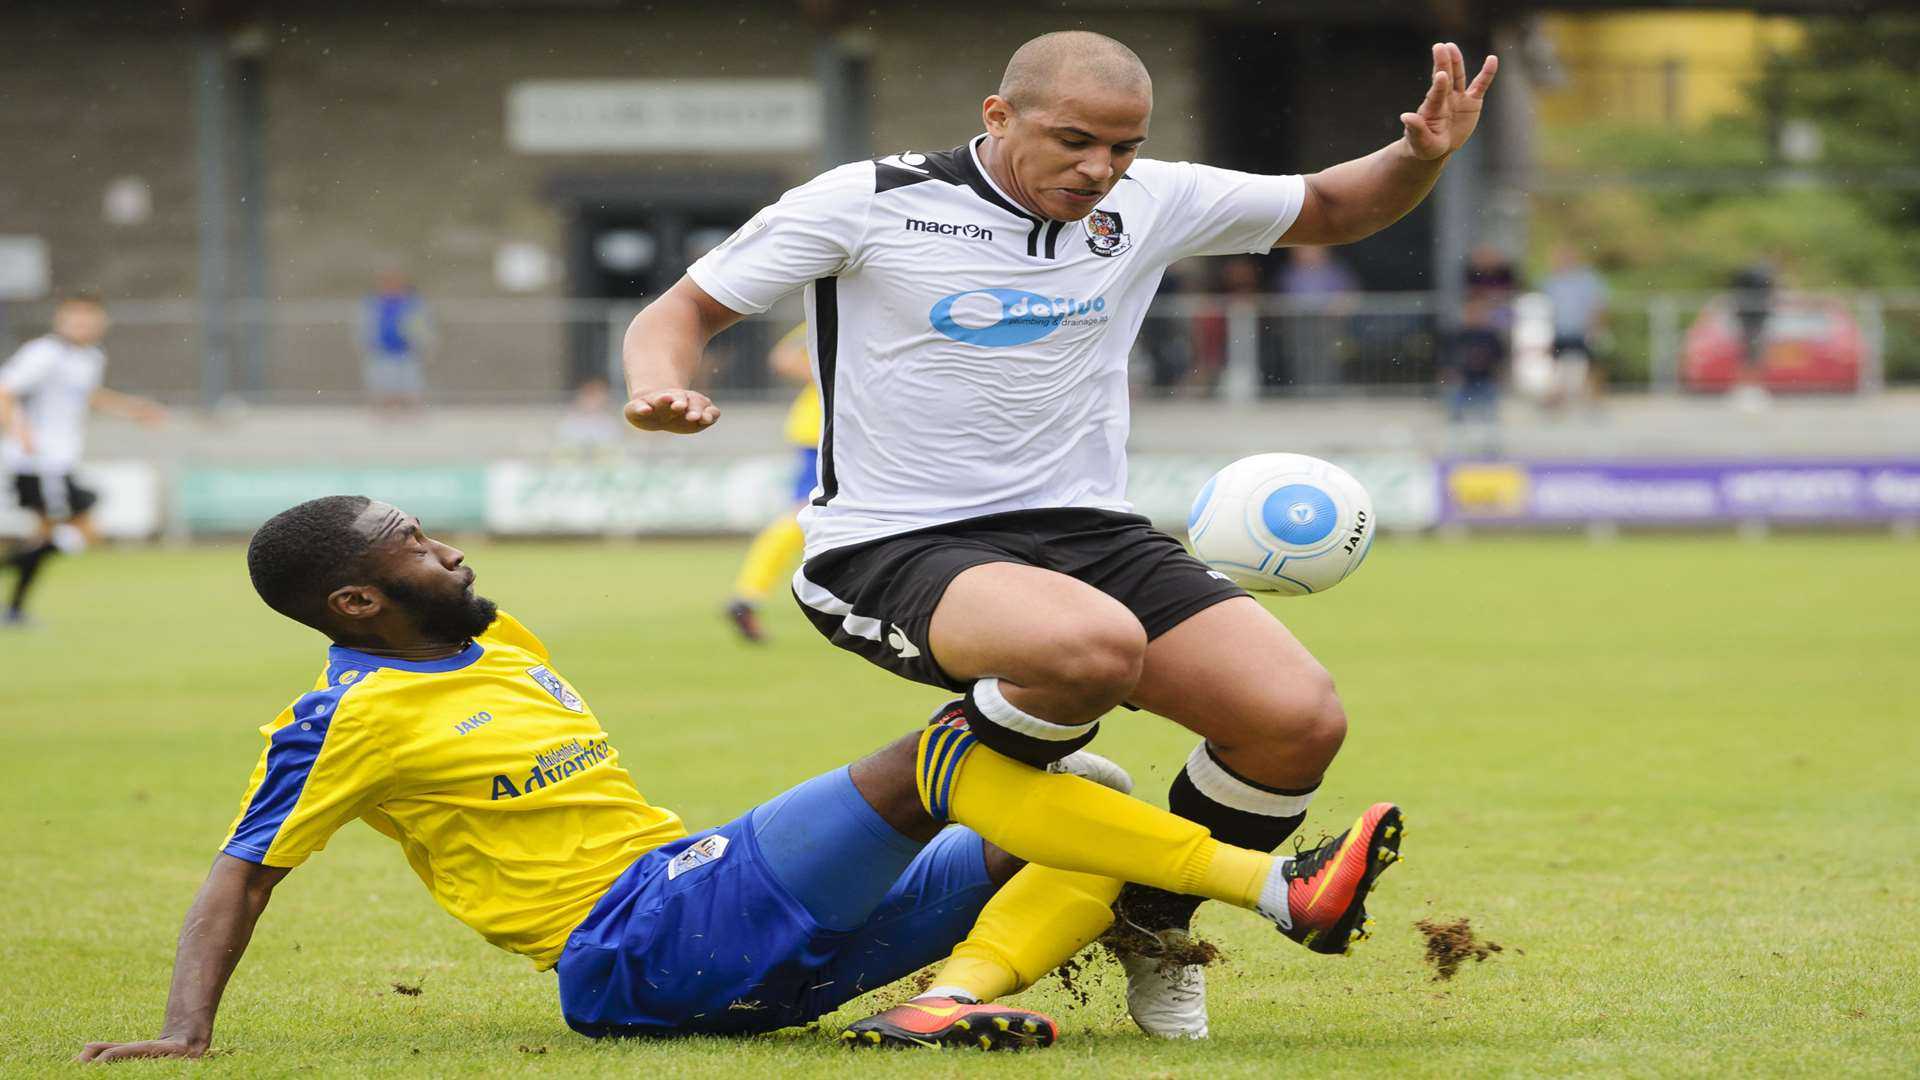 Dartford left-back Tom Wynter is challenged against Maidenhead earlier in the season. Picture: Andy Payton